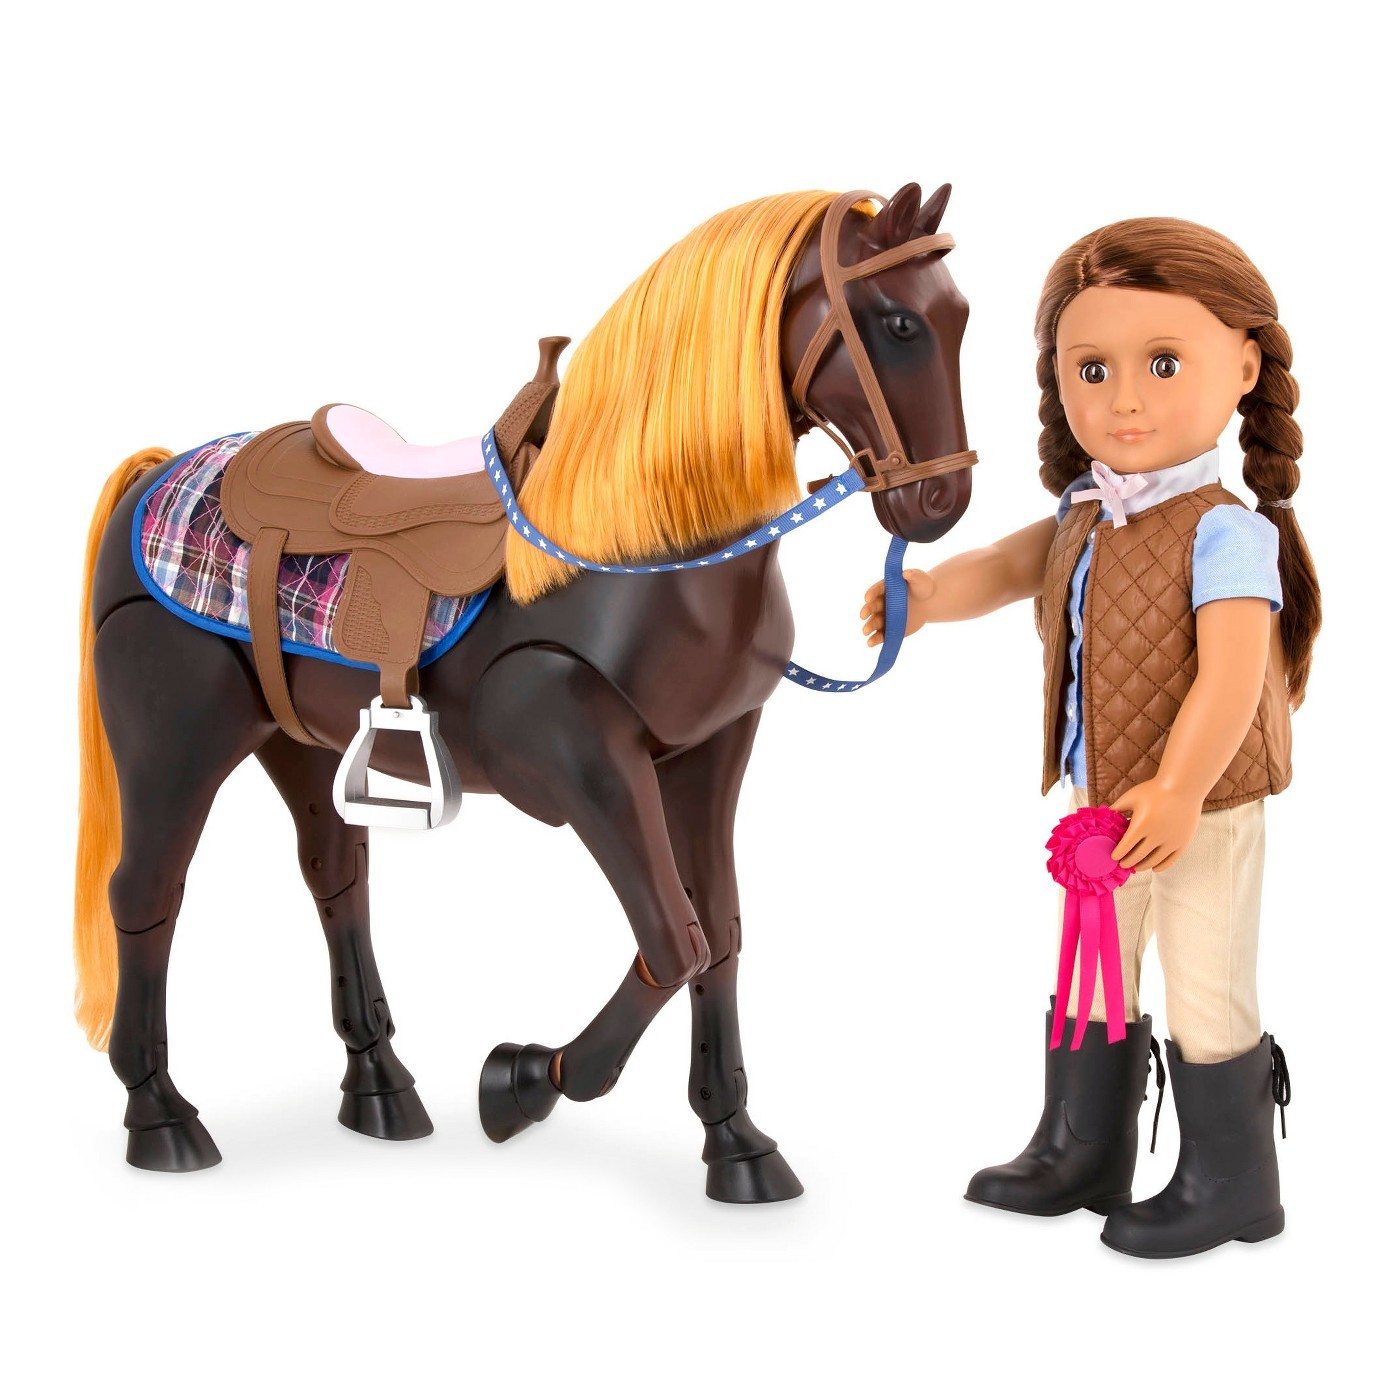 Our Generation - Horse Thoroughbred (Posable) image